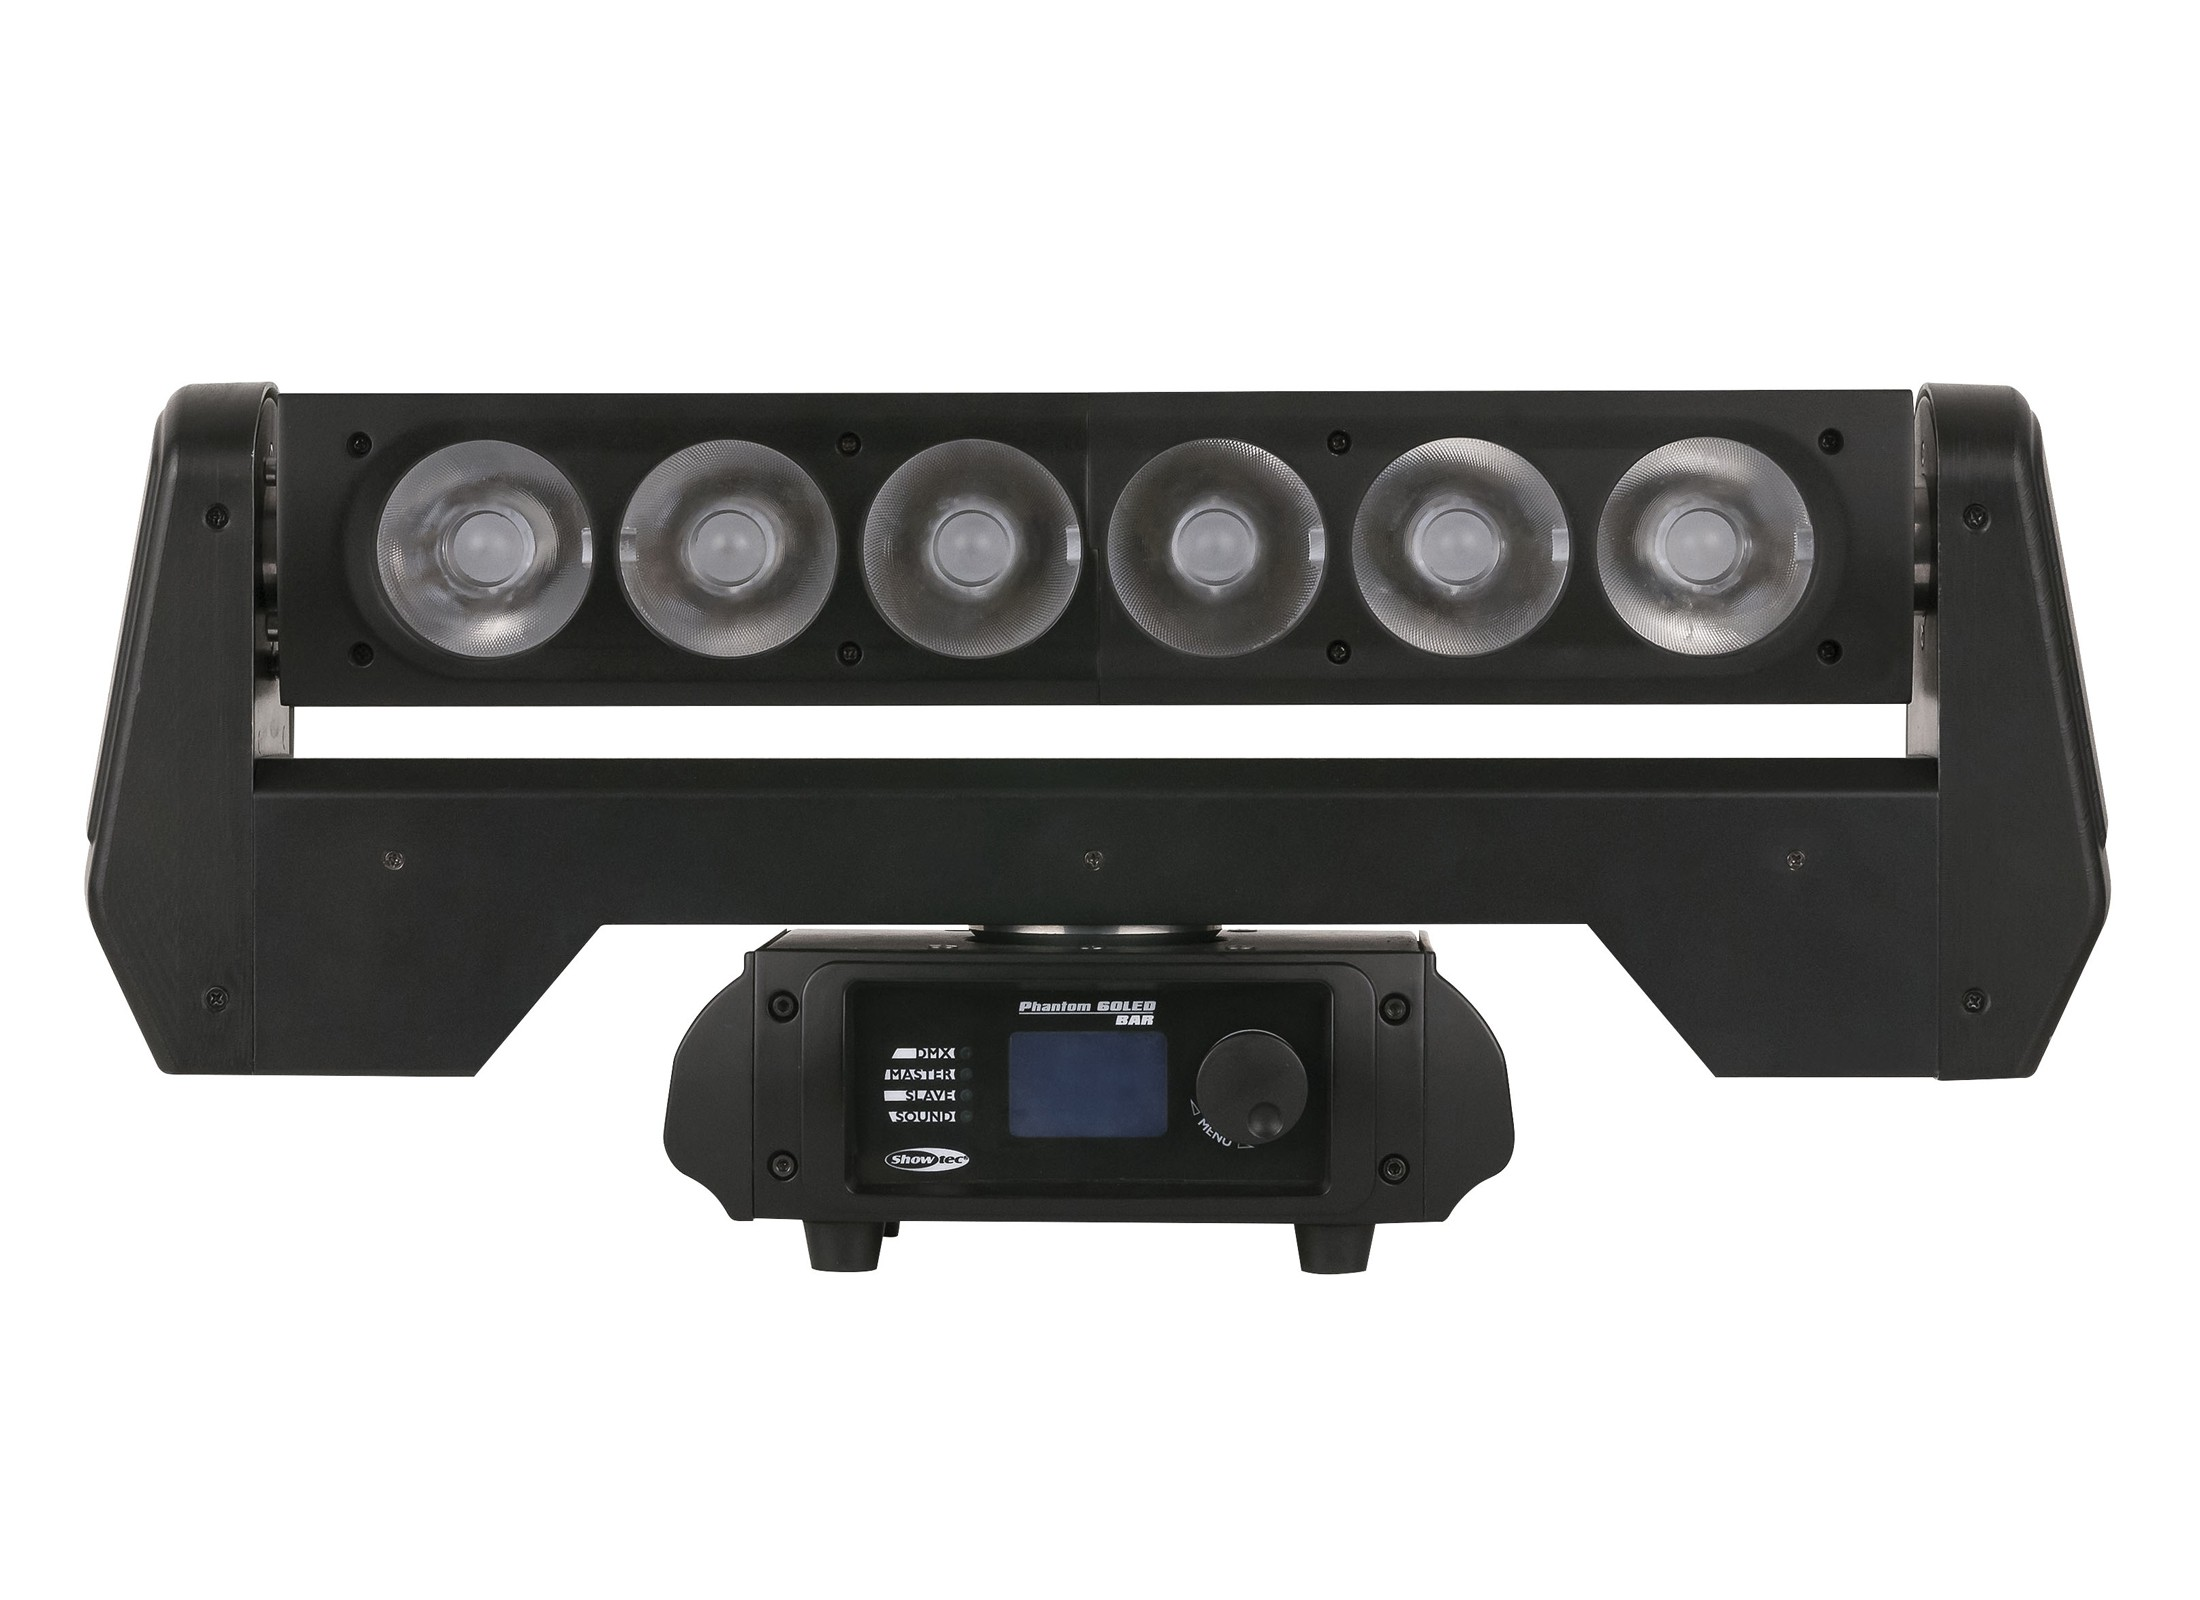 Showtec Phantom 60 LED Moving Bar Online At Low Prices At Huss Light ...